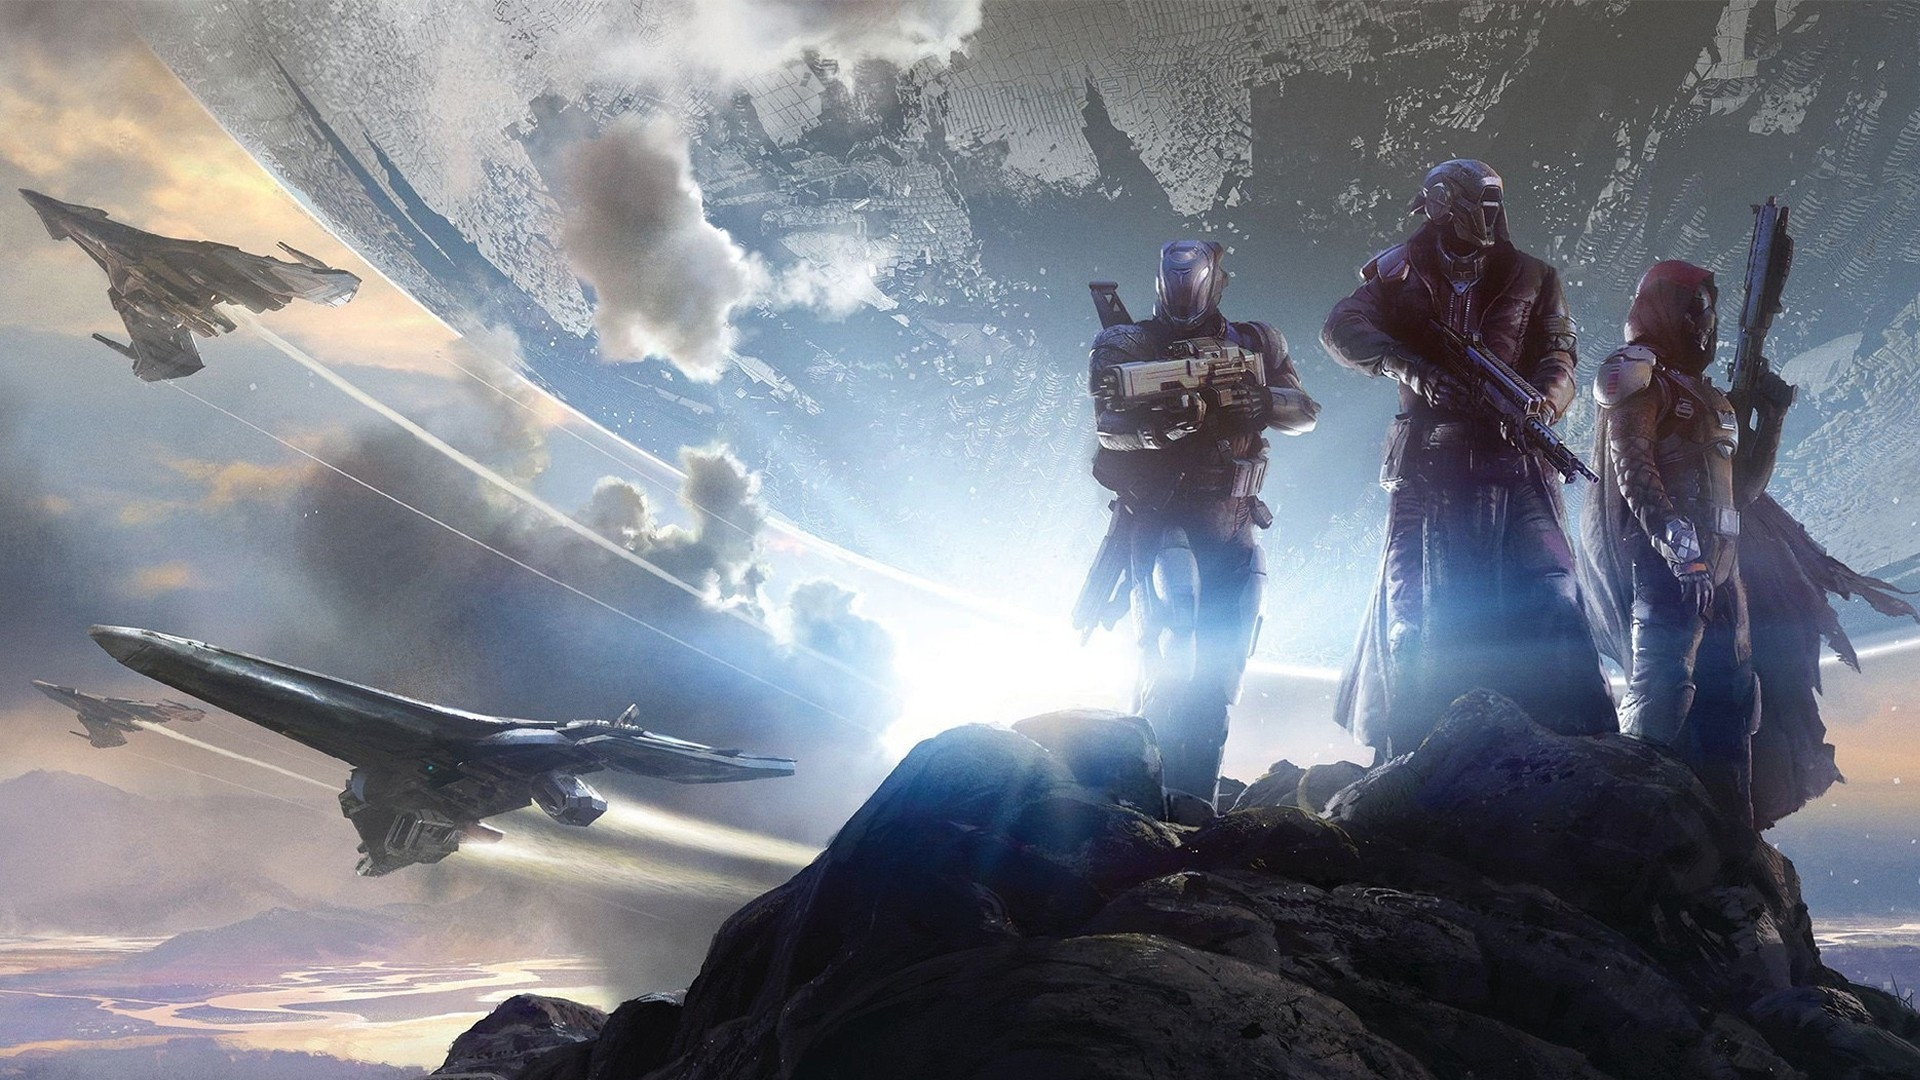 'Destiny 2' Has Been Comfirmed For Release In 2017 With Possible VR Experience